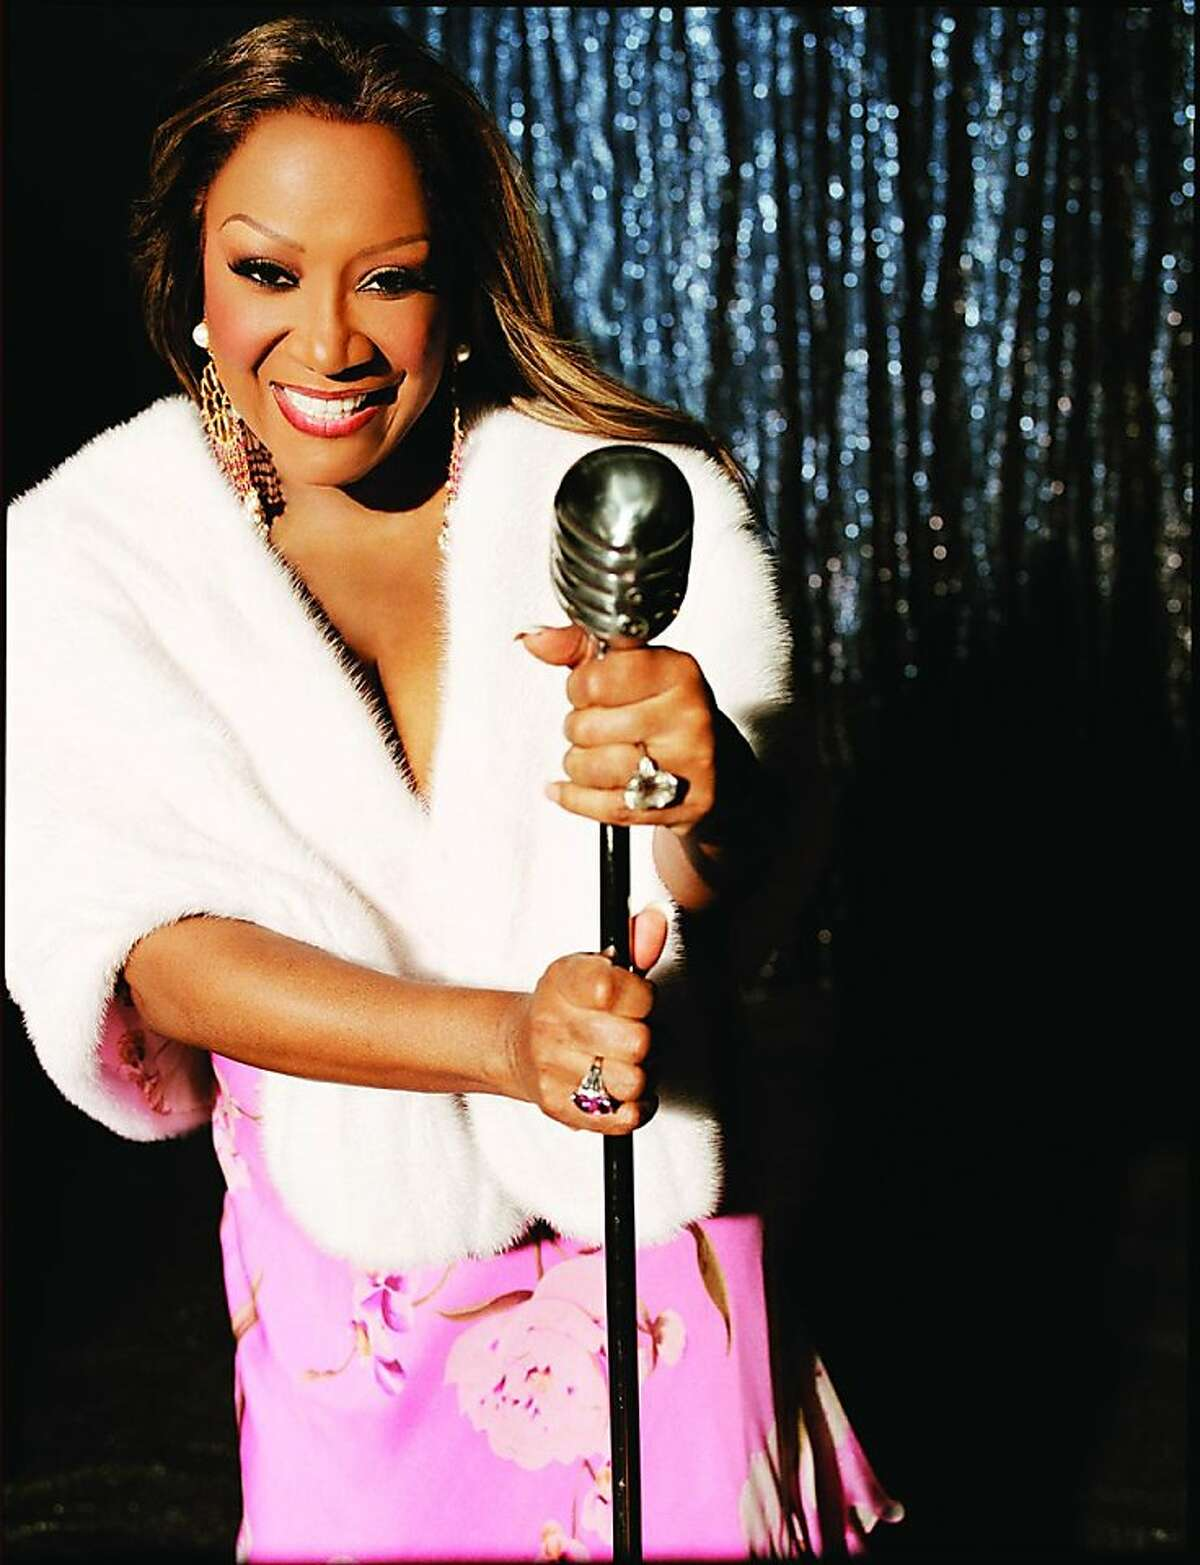 Patti LaBelle performs Friday at the Wells Fargo Center for the Arts